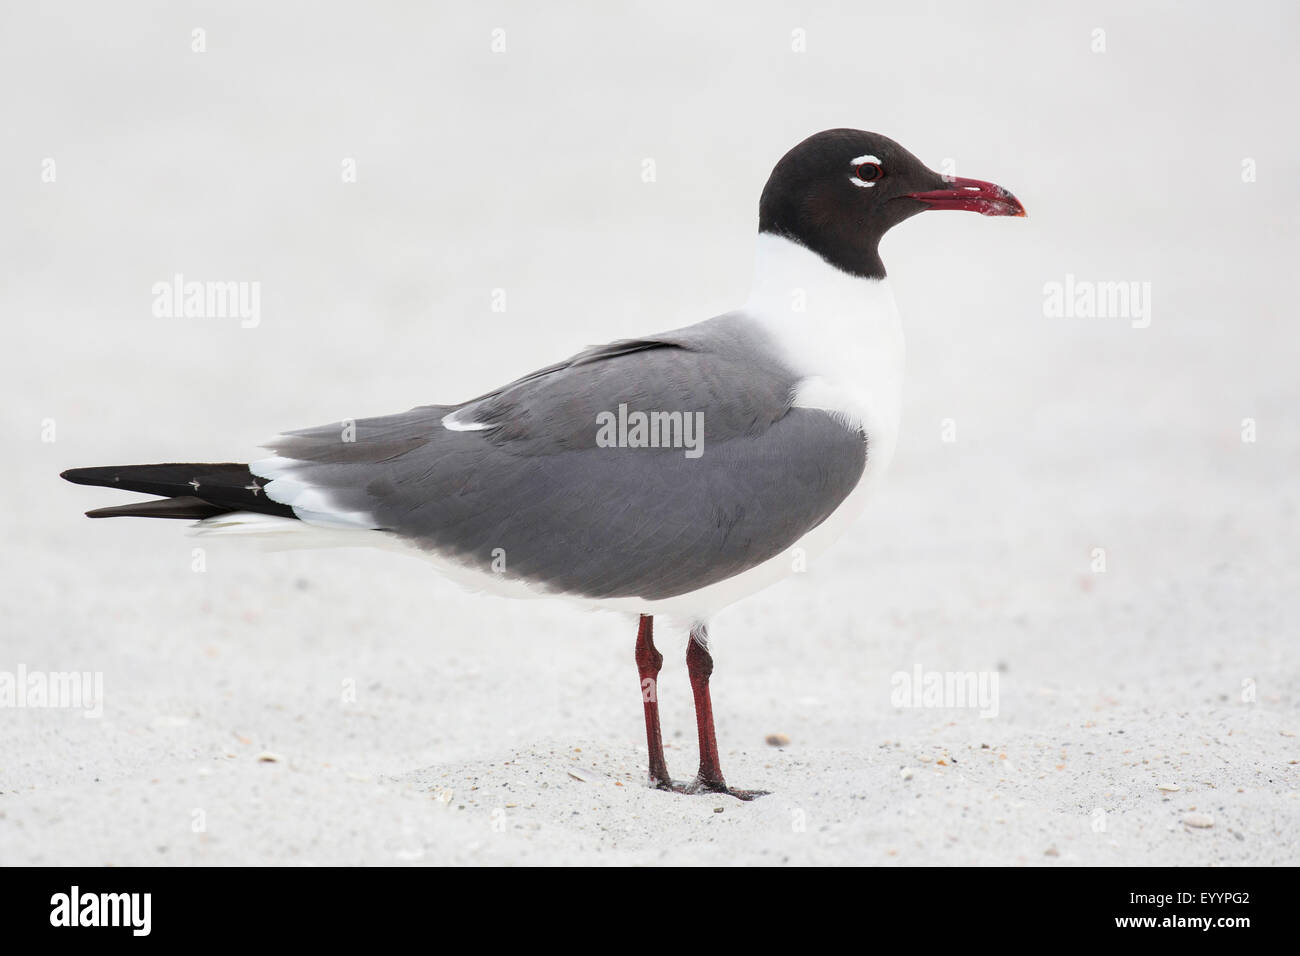 laughing gull (Larus atricilla), standing in the sand, USA, Florida, Westkueste, Kissimmee - Stock Image